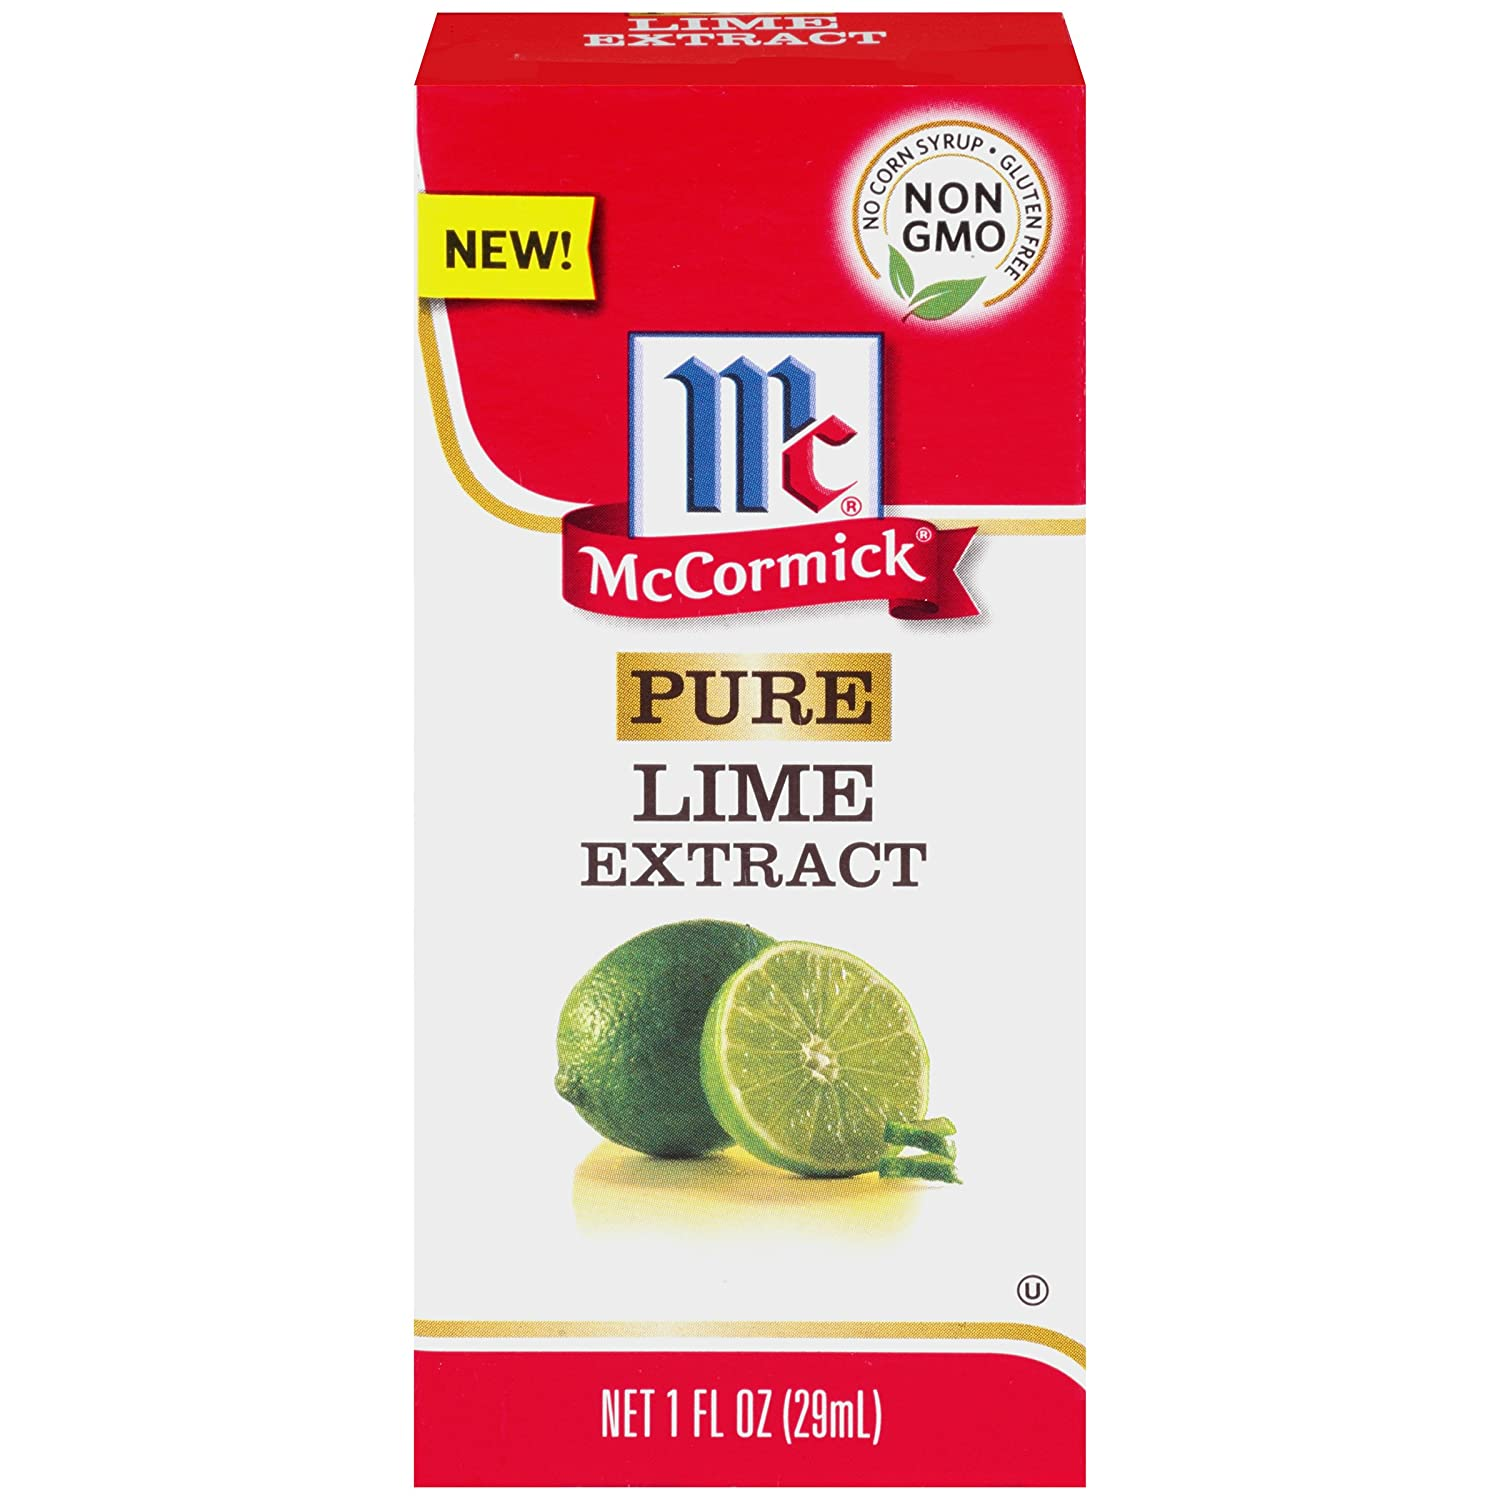 McCormick Pure Lime Extract, 1 fl oz